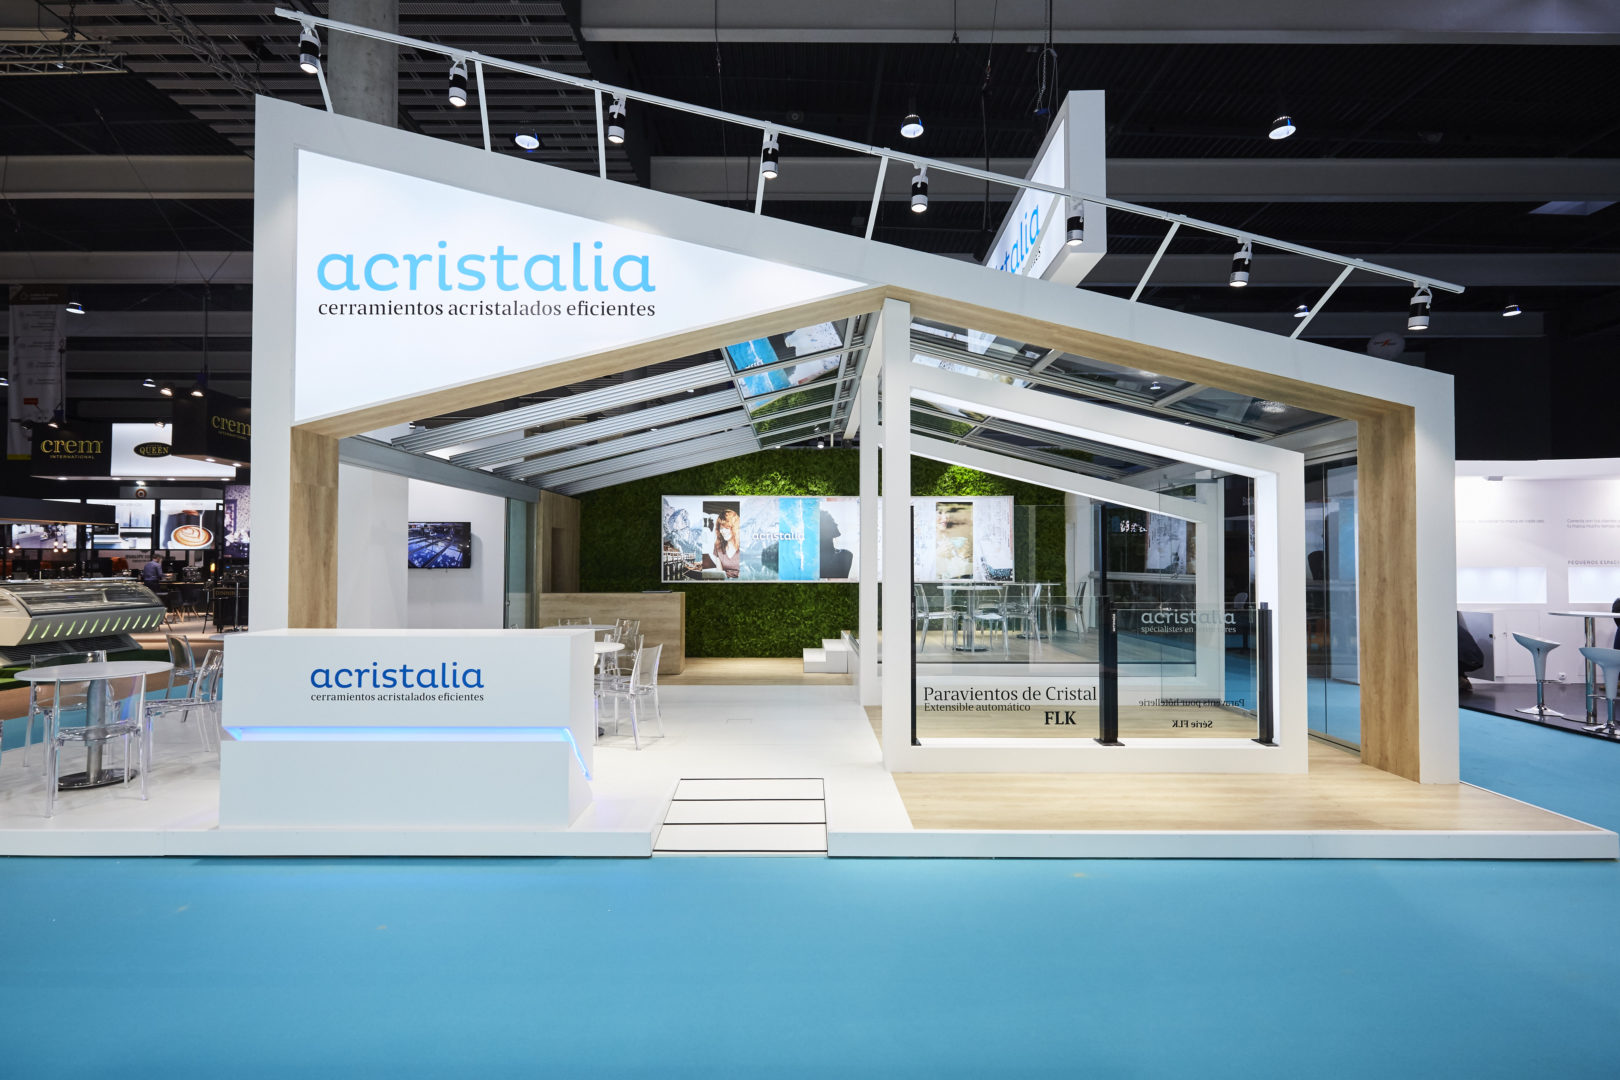 Design and construction of the Acristalia stand for Hostelco 2018.